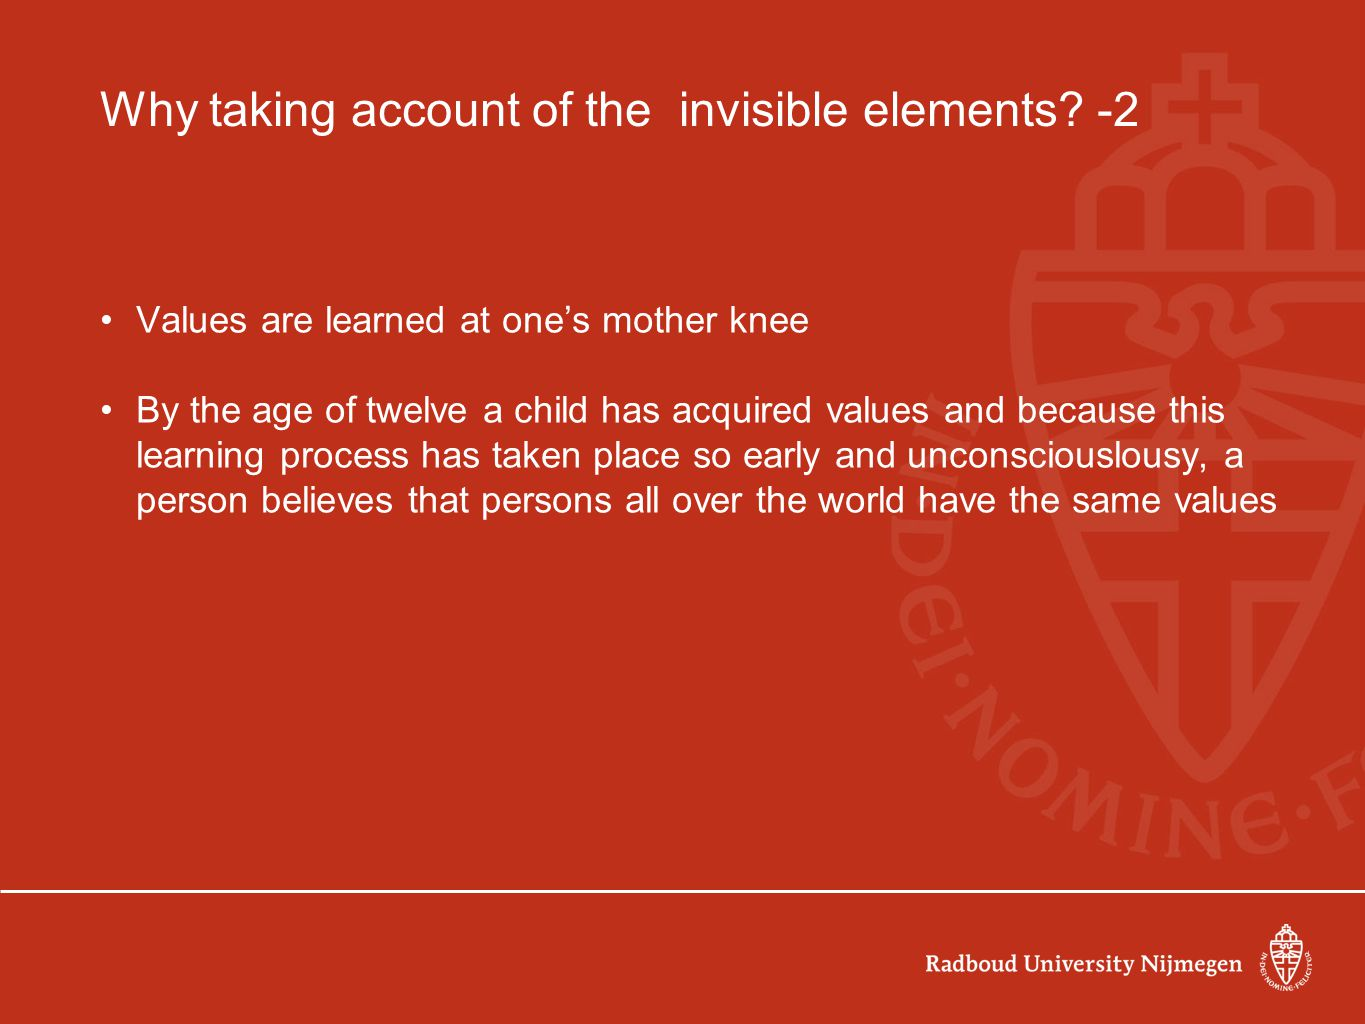 Why taking account of the invisible elements -2